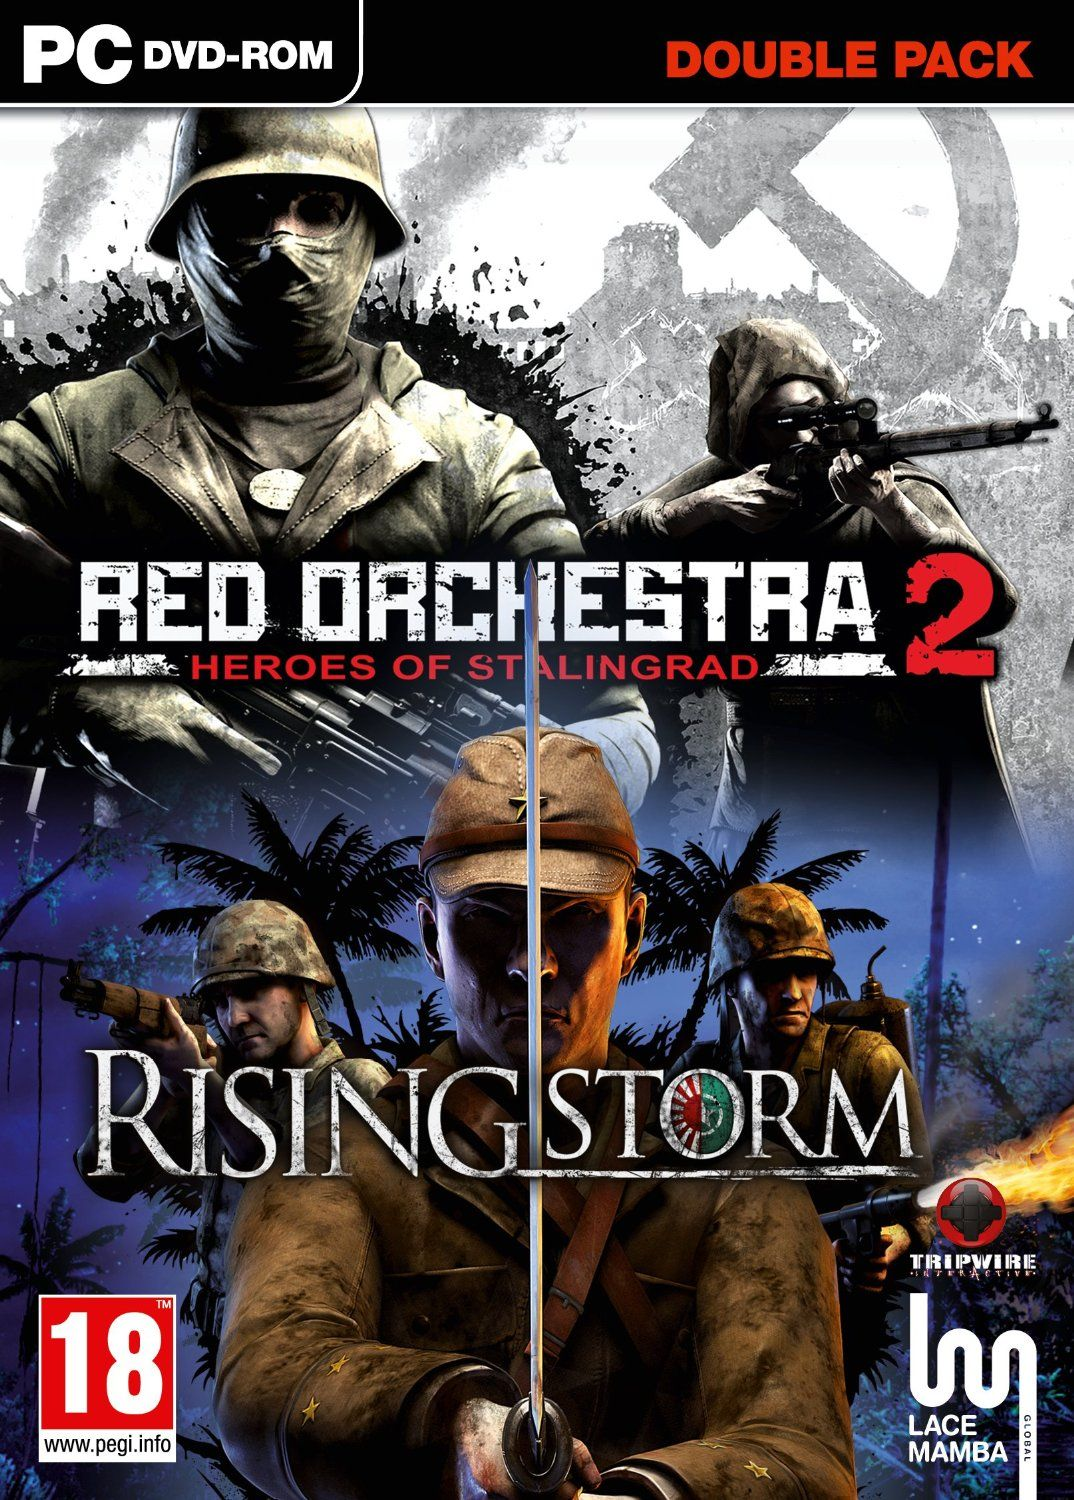 Free Download Pc Games And Software Red Orchestra 2 Rising Stom Free Download Pc Game Rising Storm Download Games Free Pc Games